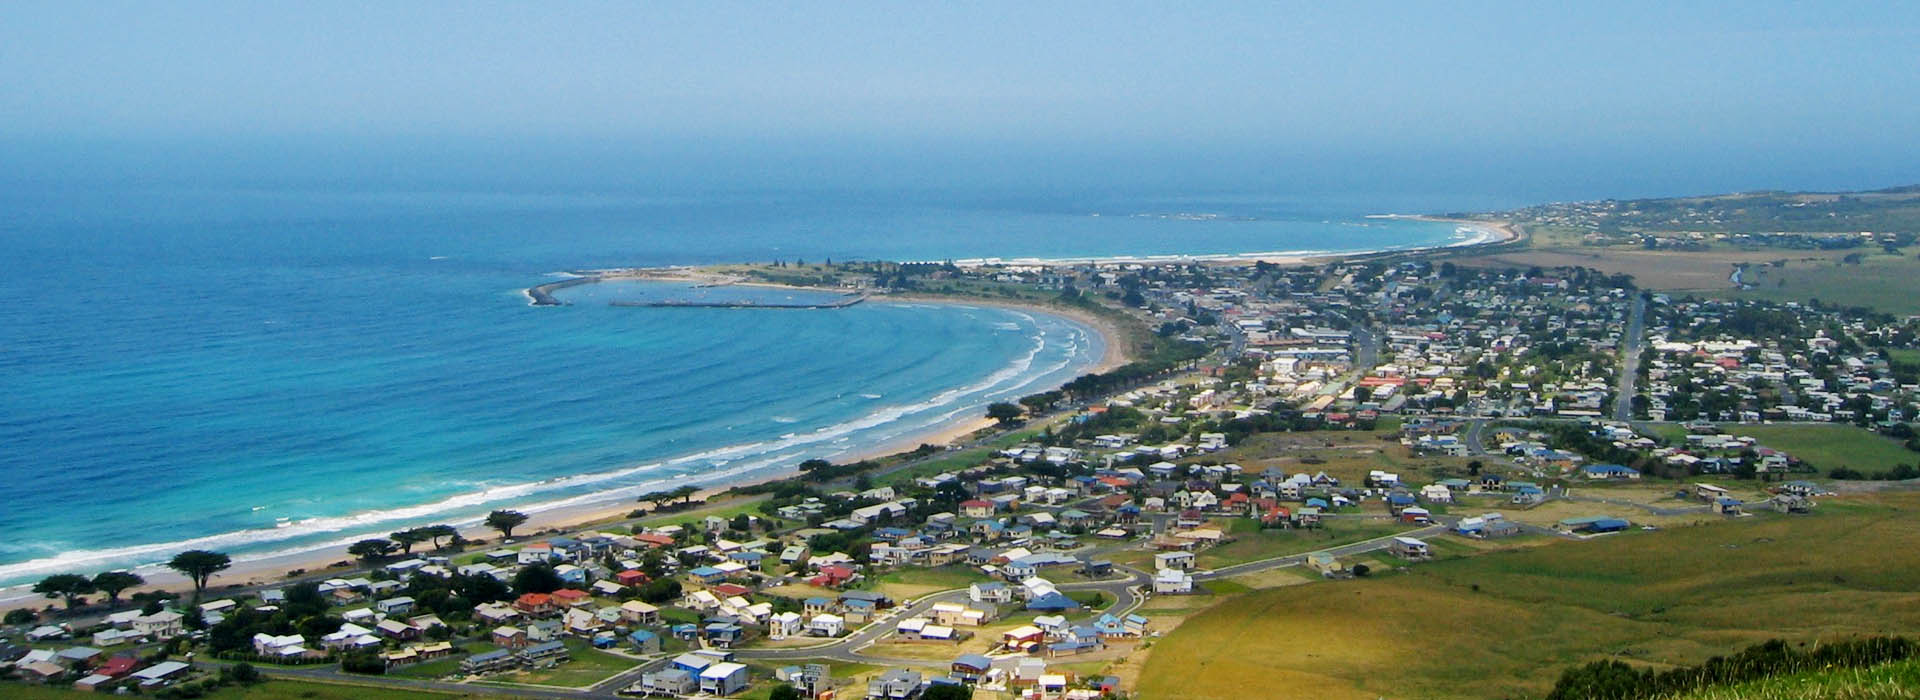 Apollo Bay is a great base to stay when exploring the Great Ocean Road region.